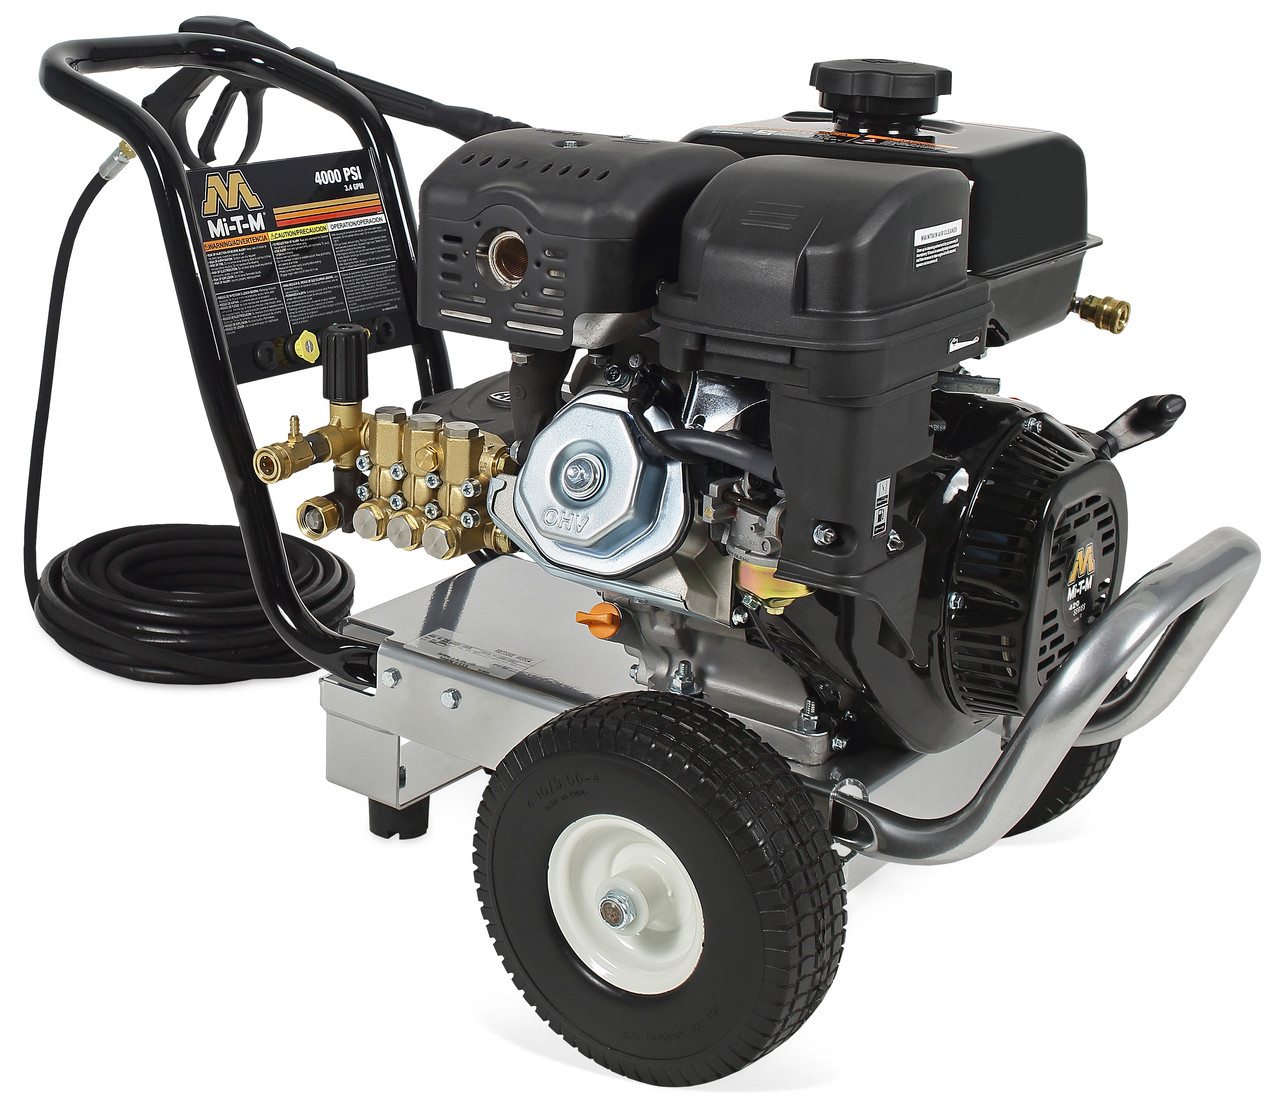 hight resolution of mi t m choremaster pressure washer cm 4000 1mmb 4000 psi 3 4 gpm mi t m wiring diagram